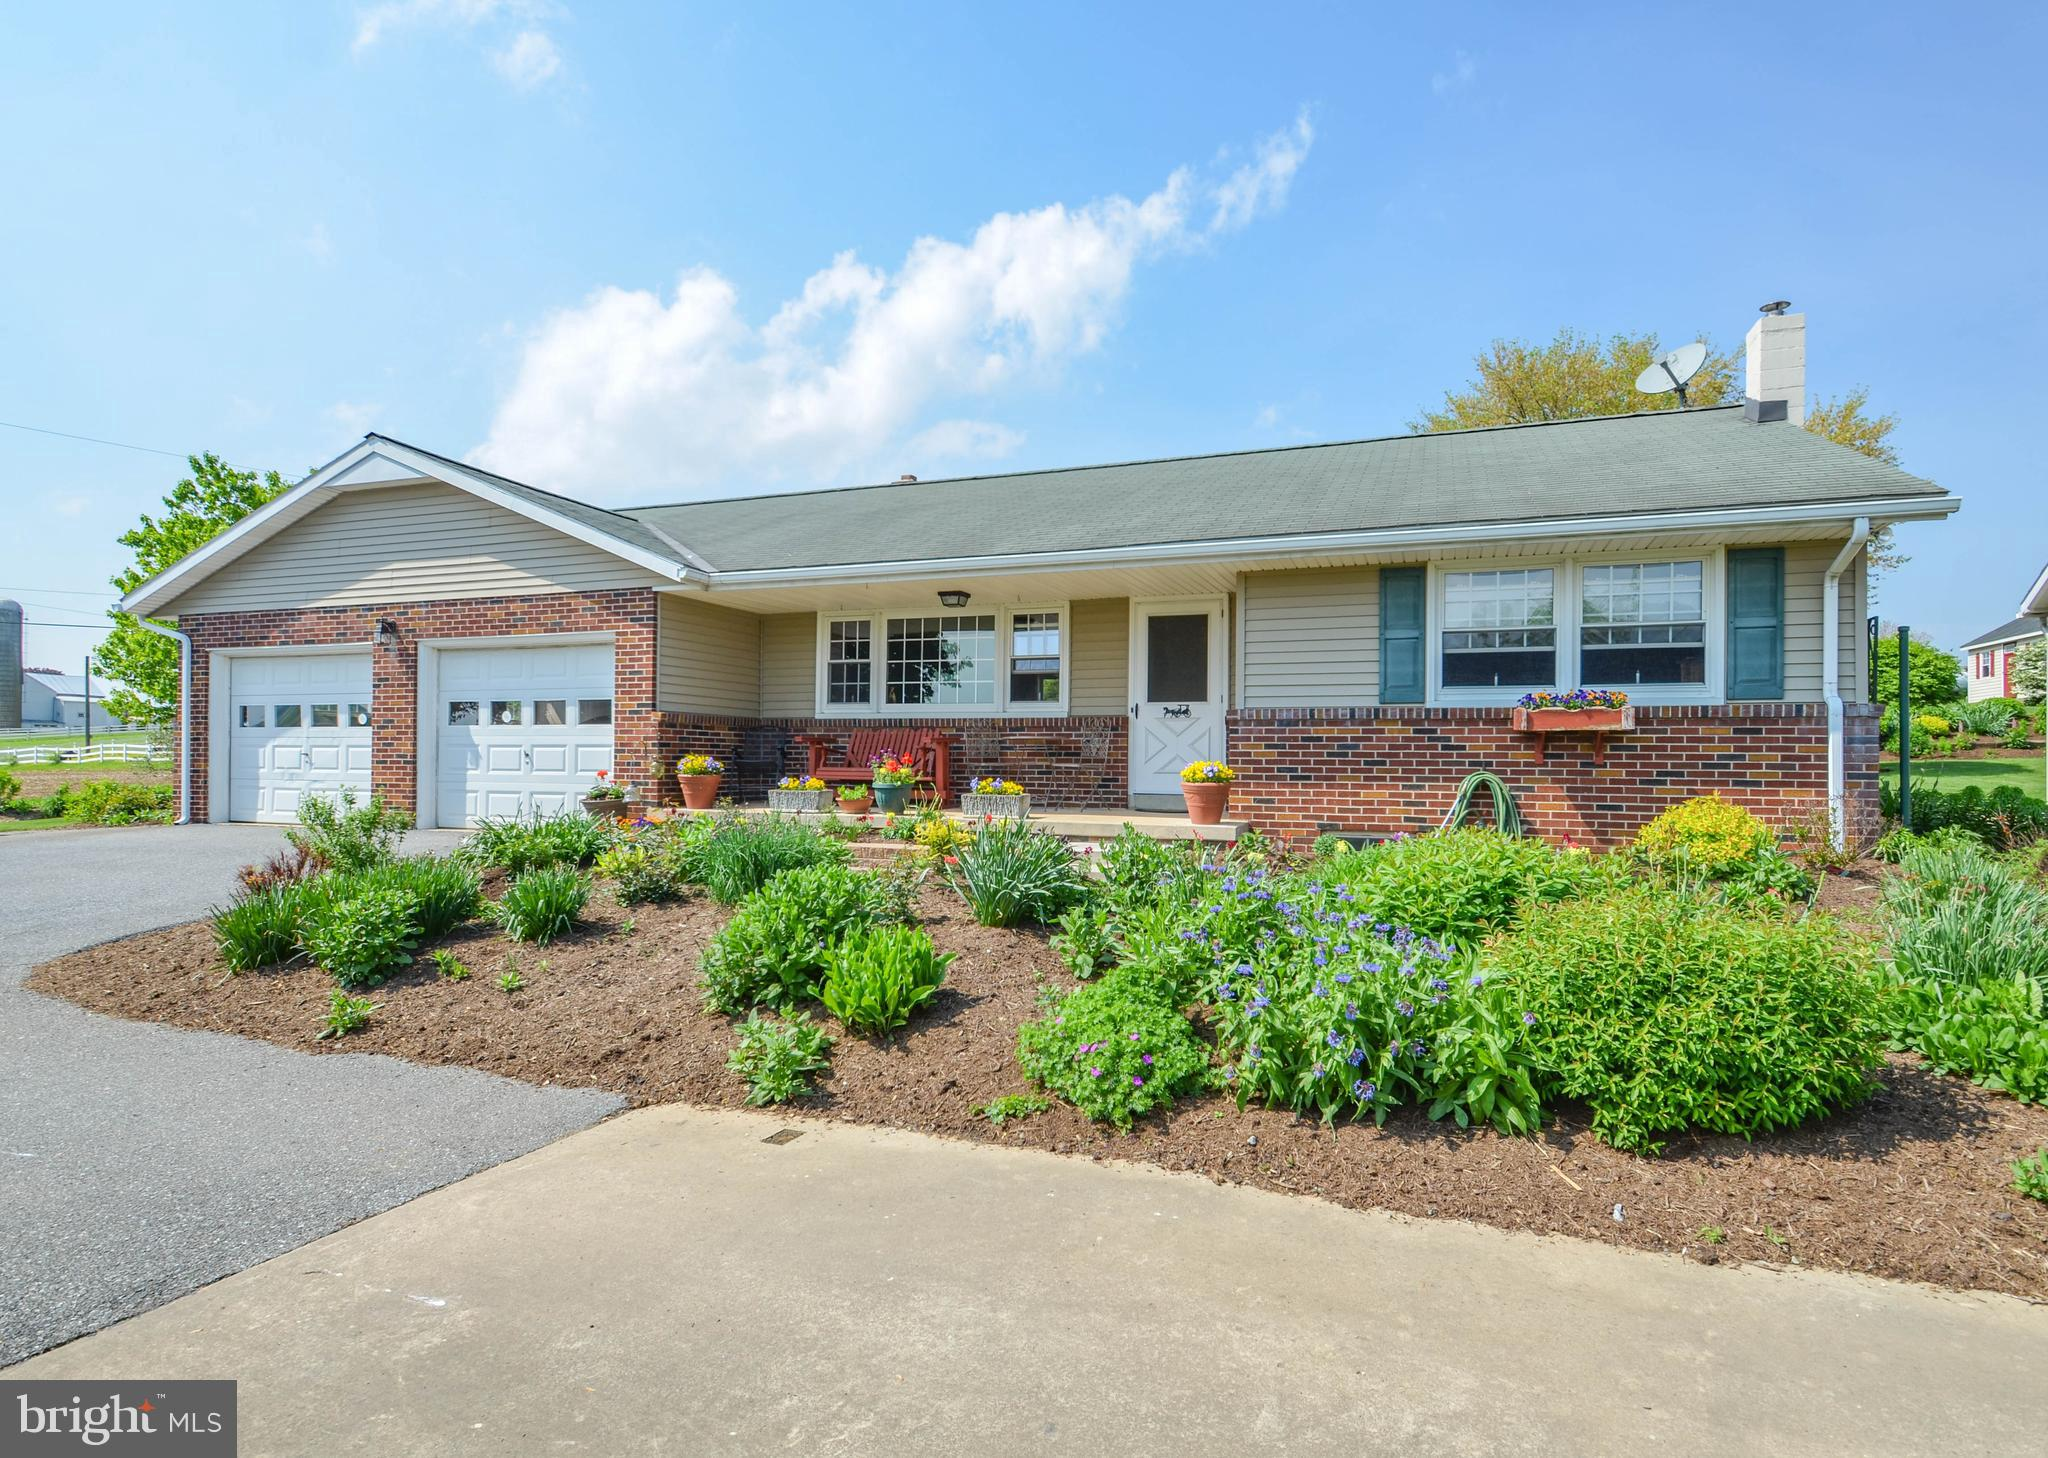 223 N HARVEST ROAD, RONKS, PA 17572